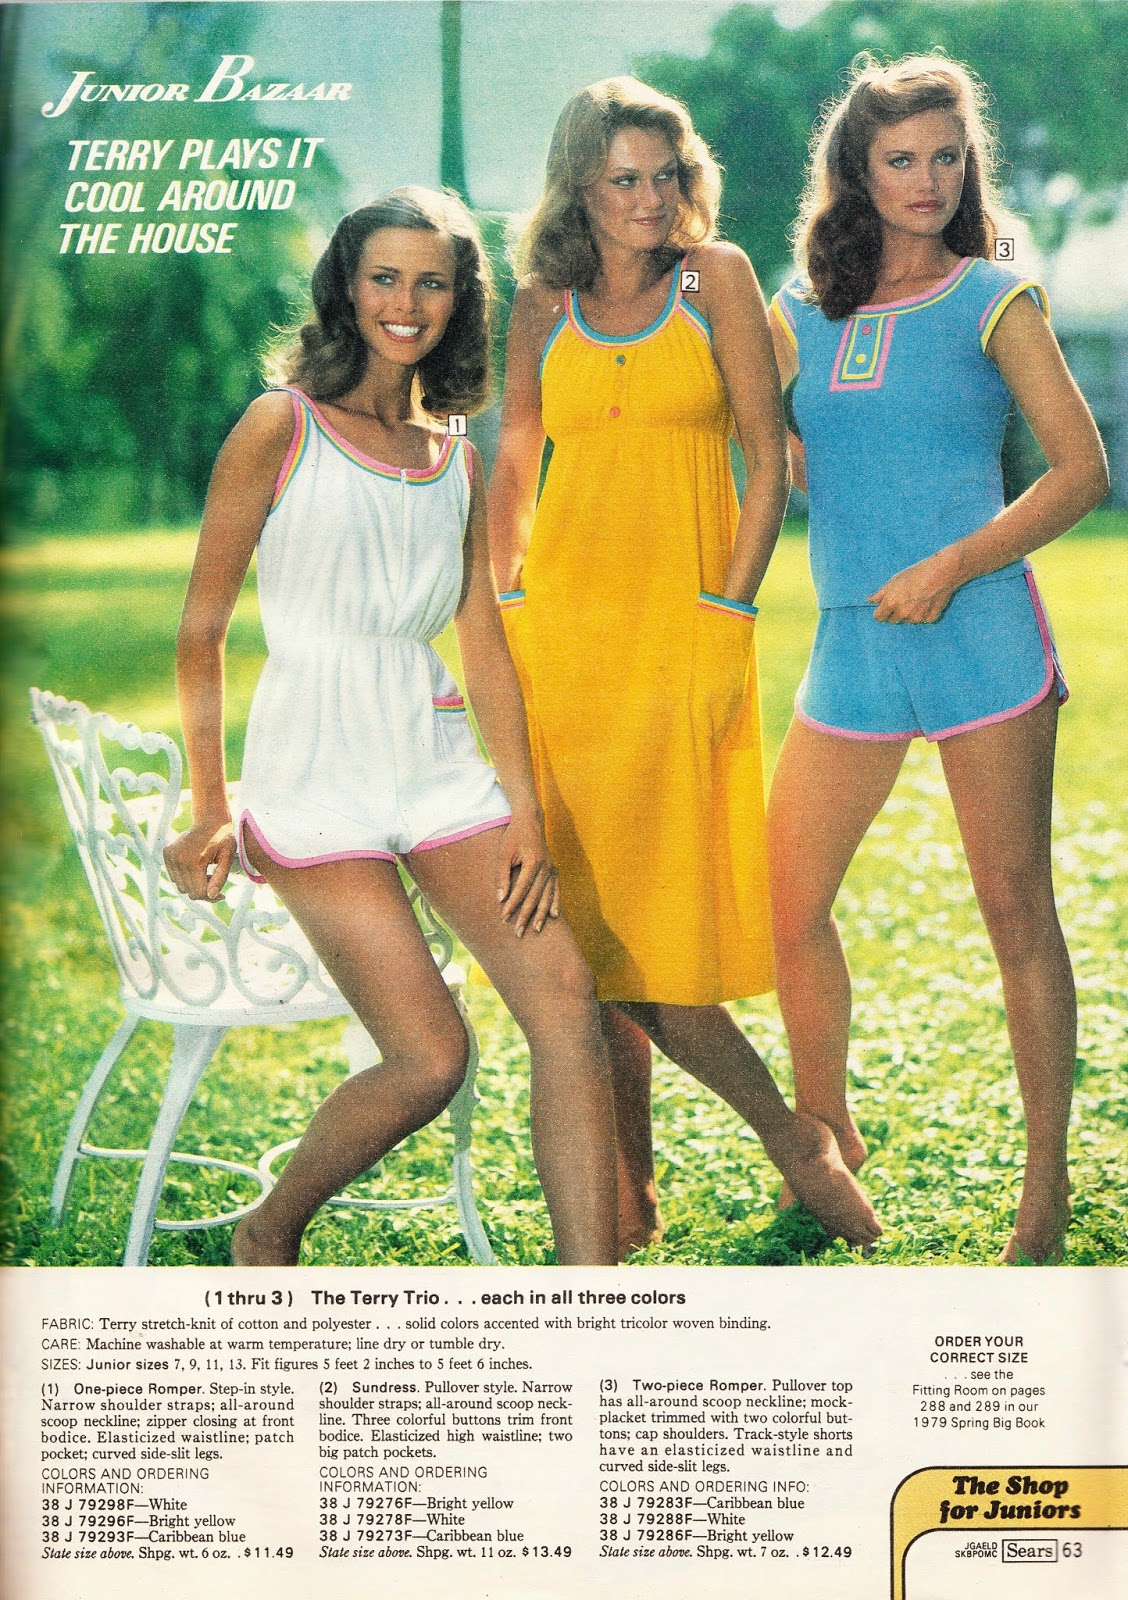 1000+ images about 1979 on Pinterest   Christmas catalogs ...